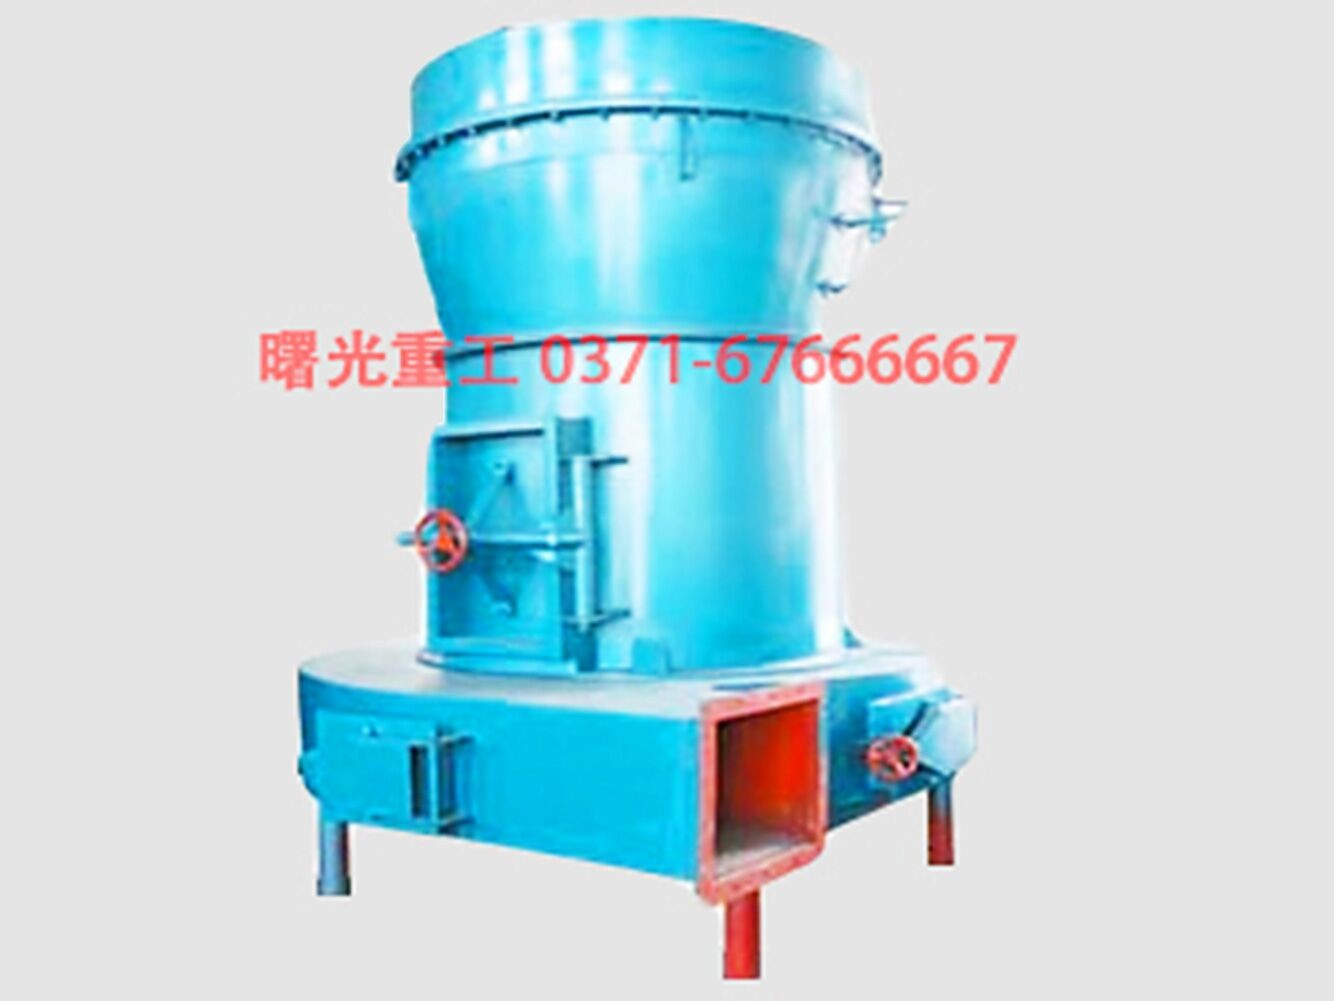 Calcium Carbonate pulverizer machine